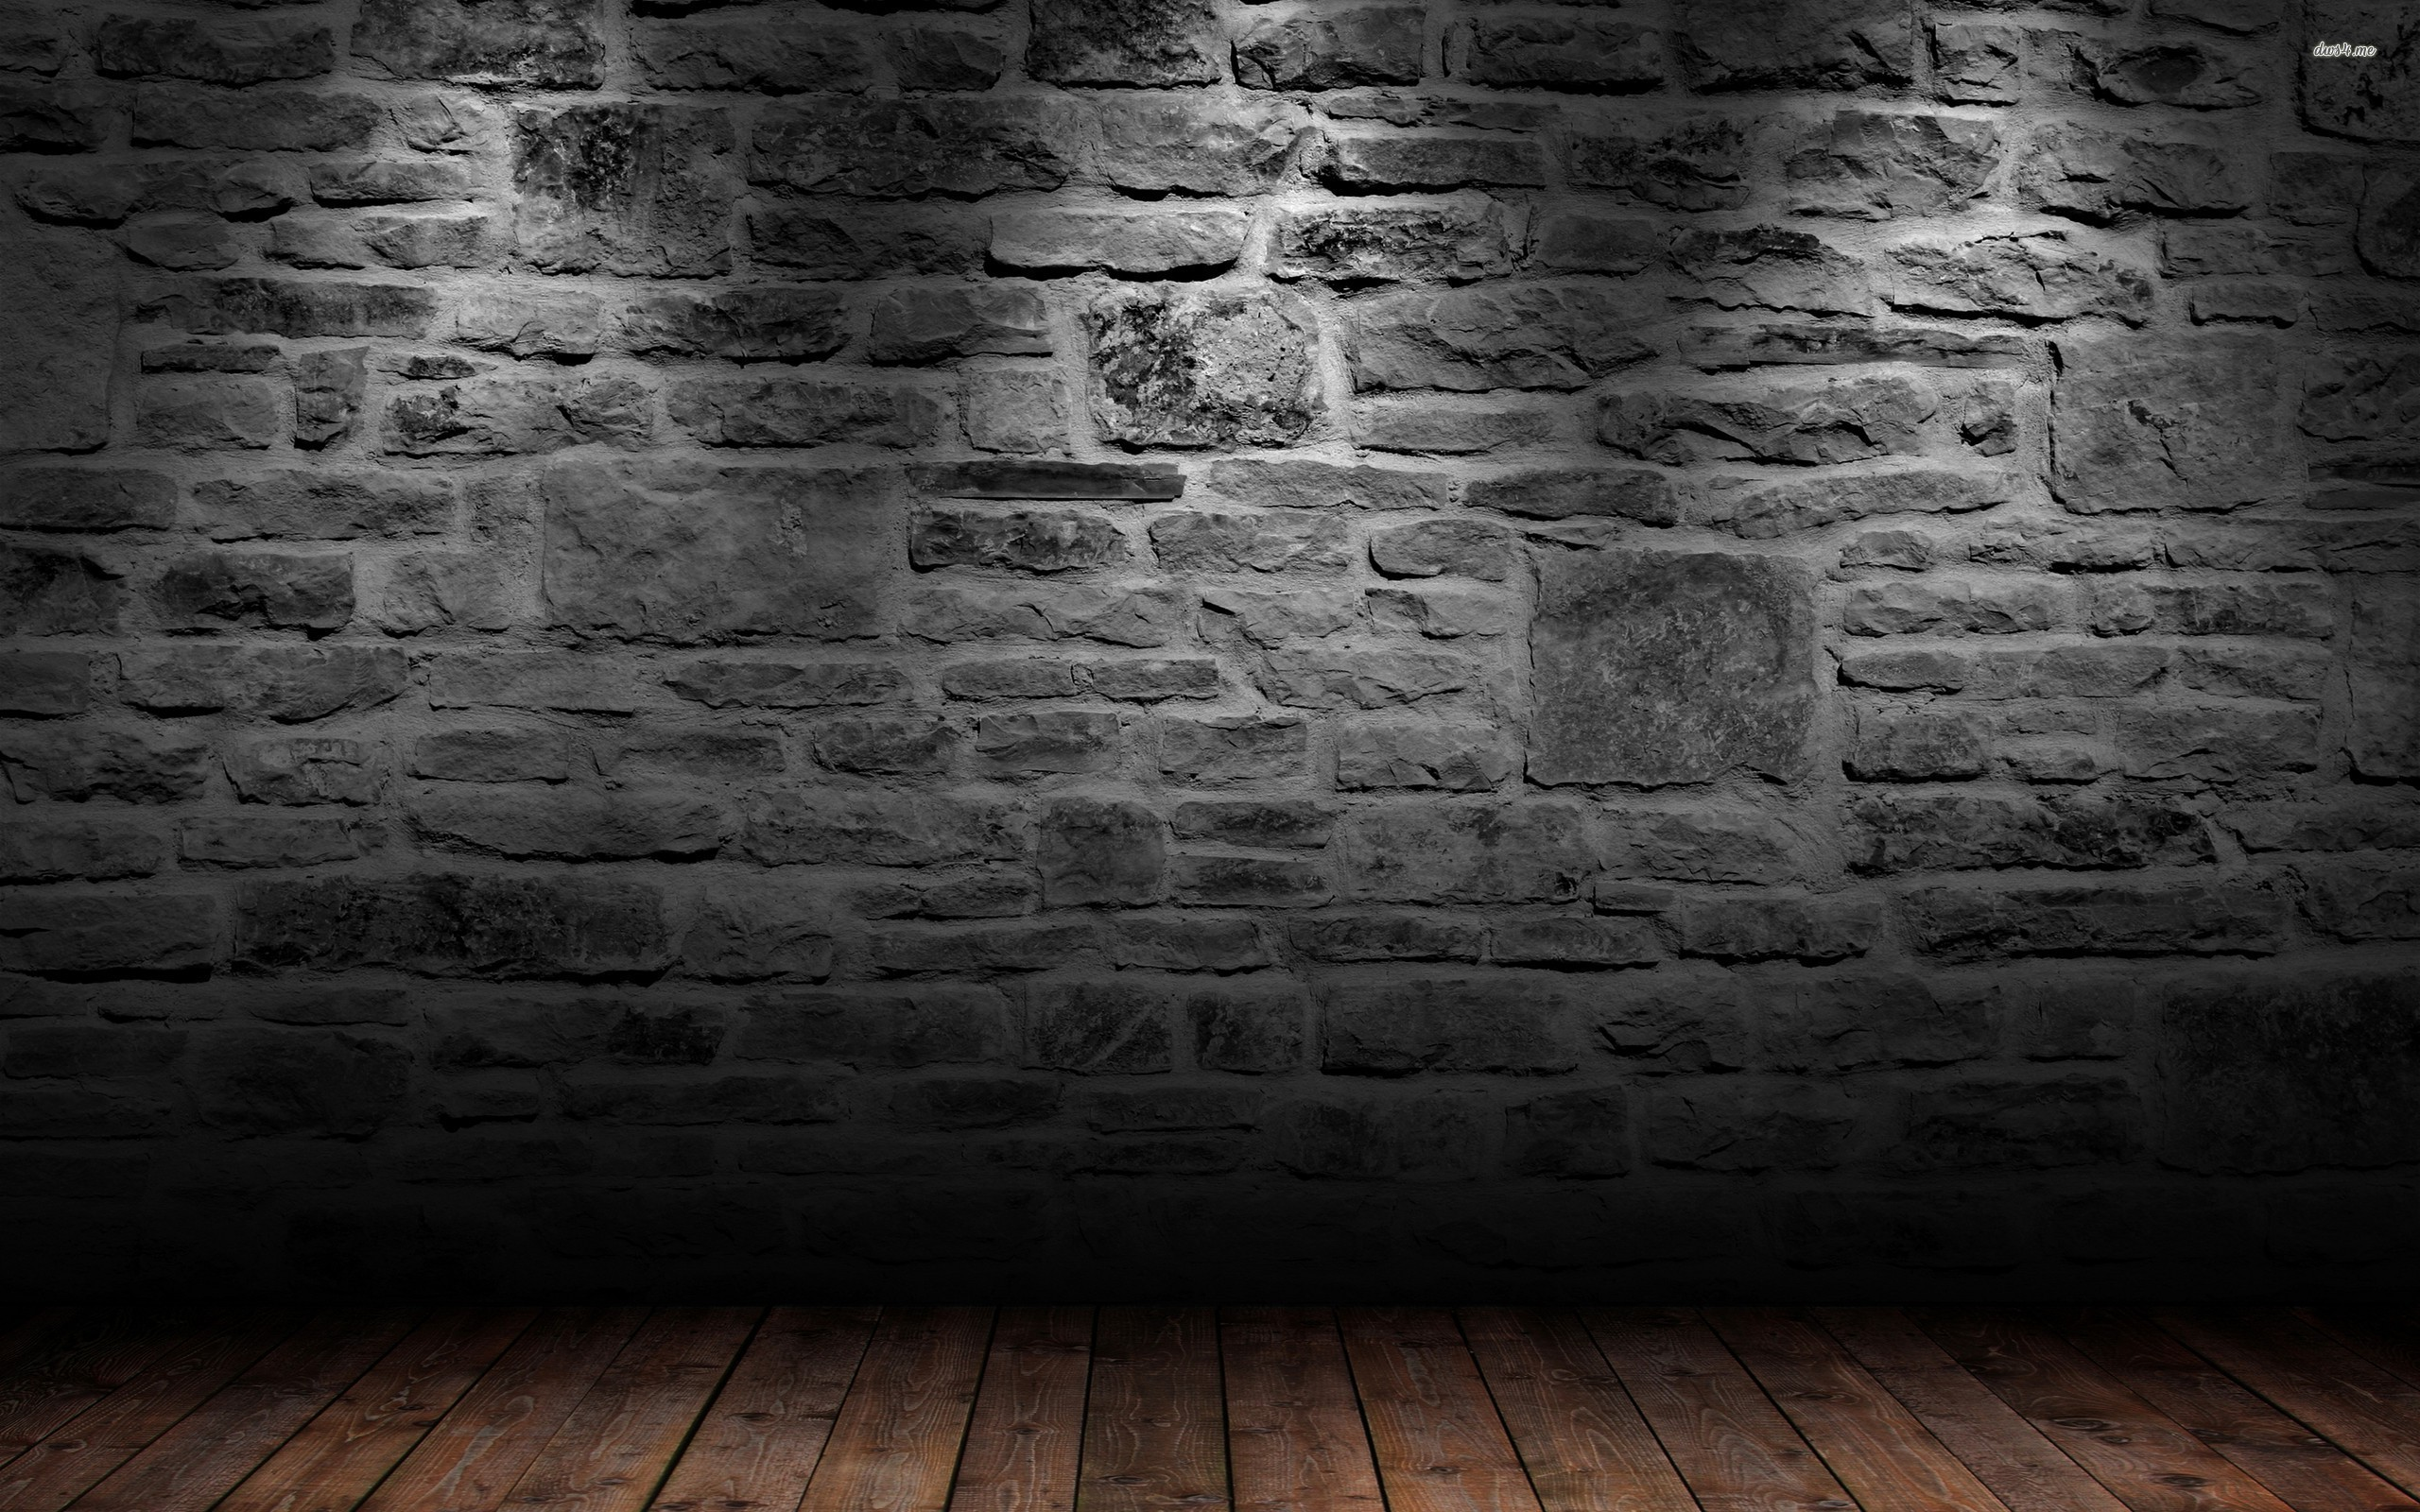 Wooden Floor clipart brick wallpaper Wallpaper 60 Brick Brick+wall+and+wood+floor+wallpaper Wallpaper